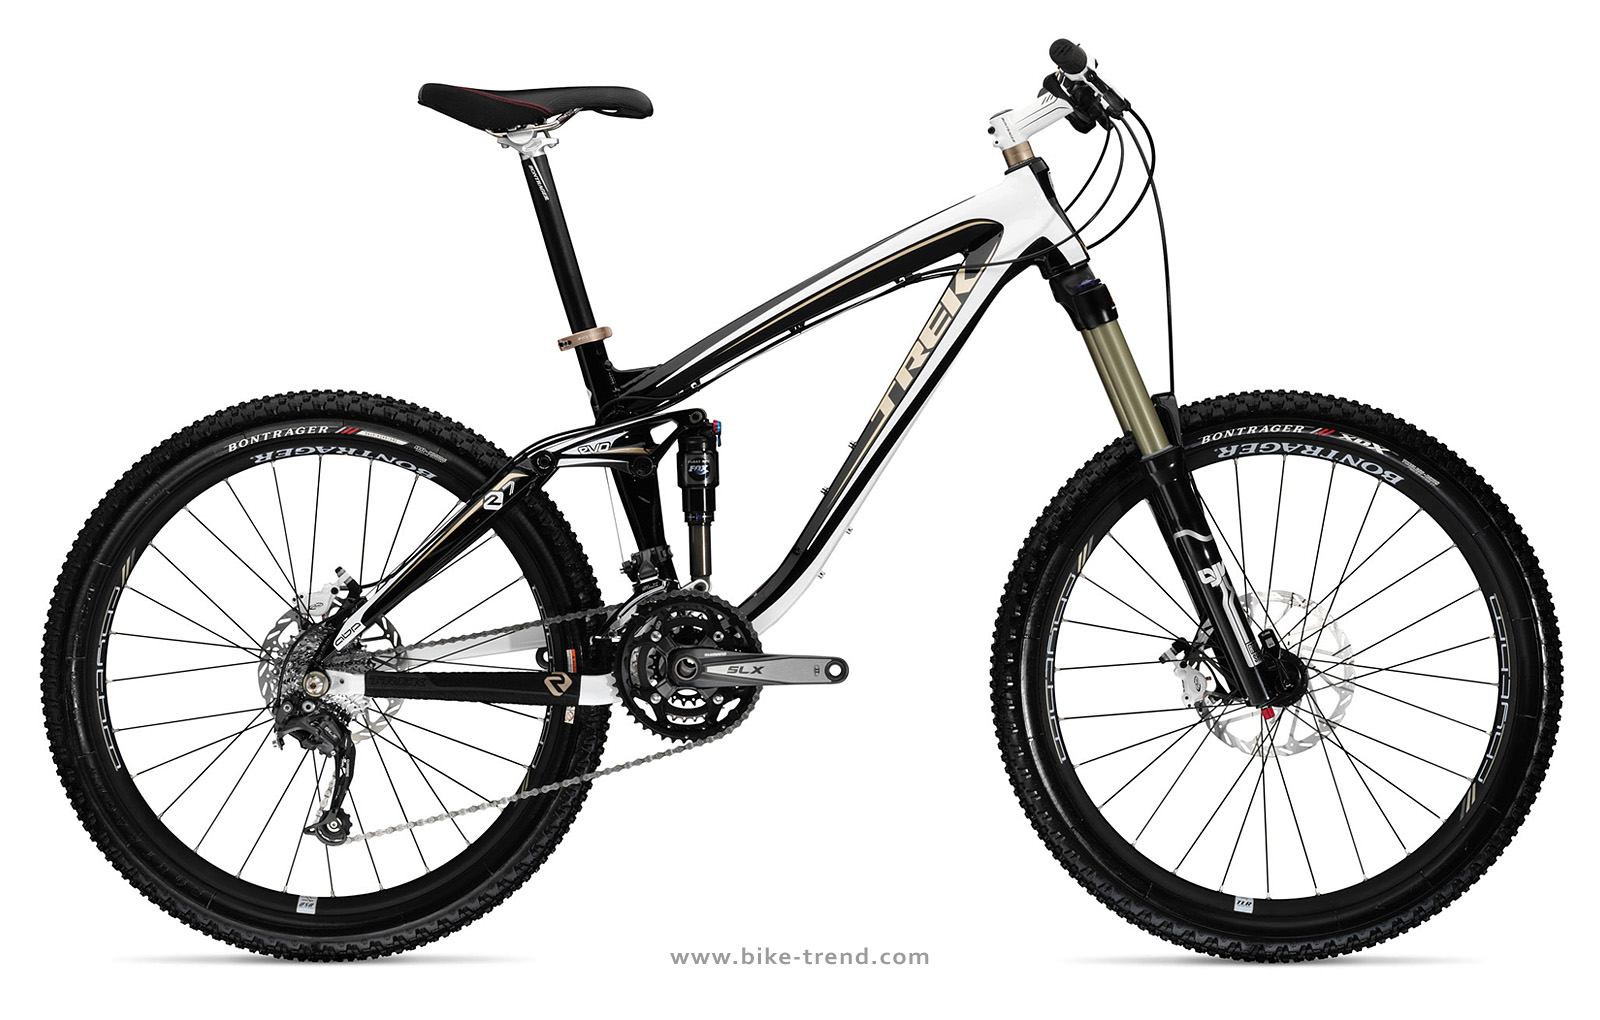 Trek Remedy 9 8 7 2009 Bike Trend